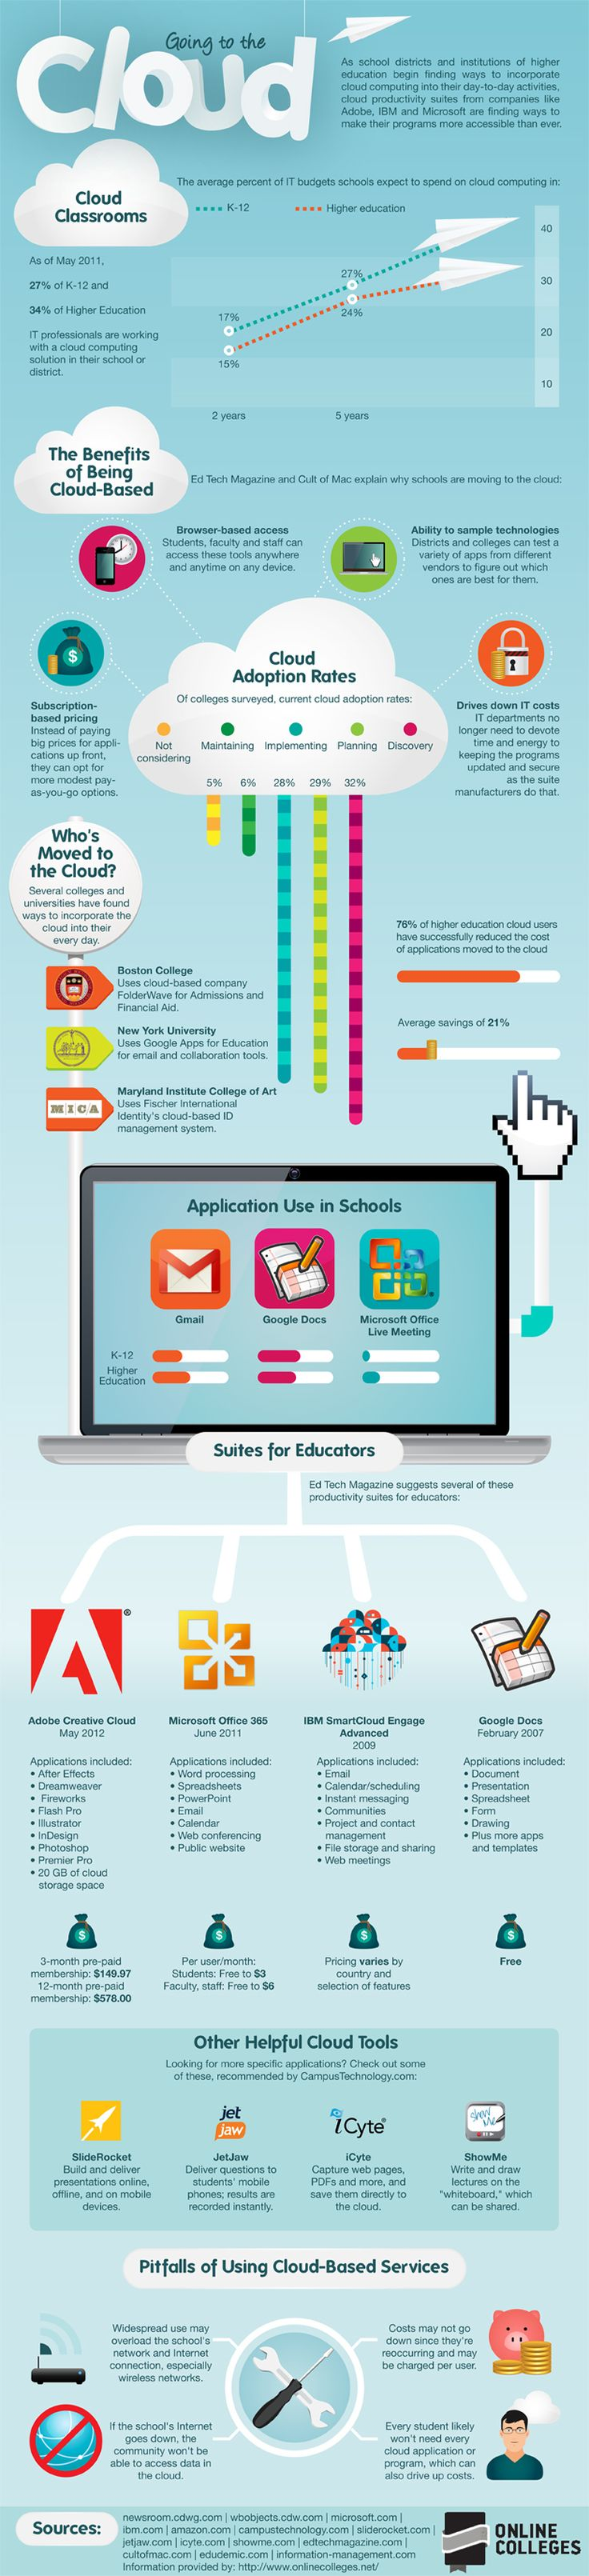 Tracking Cloud Adoption in Schools | #infographic repinned by @Piktochart